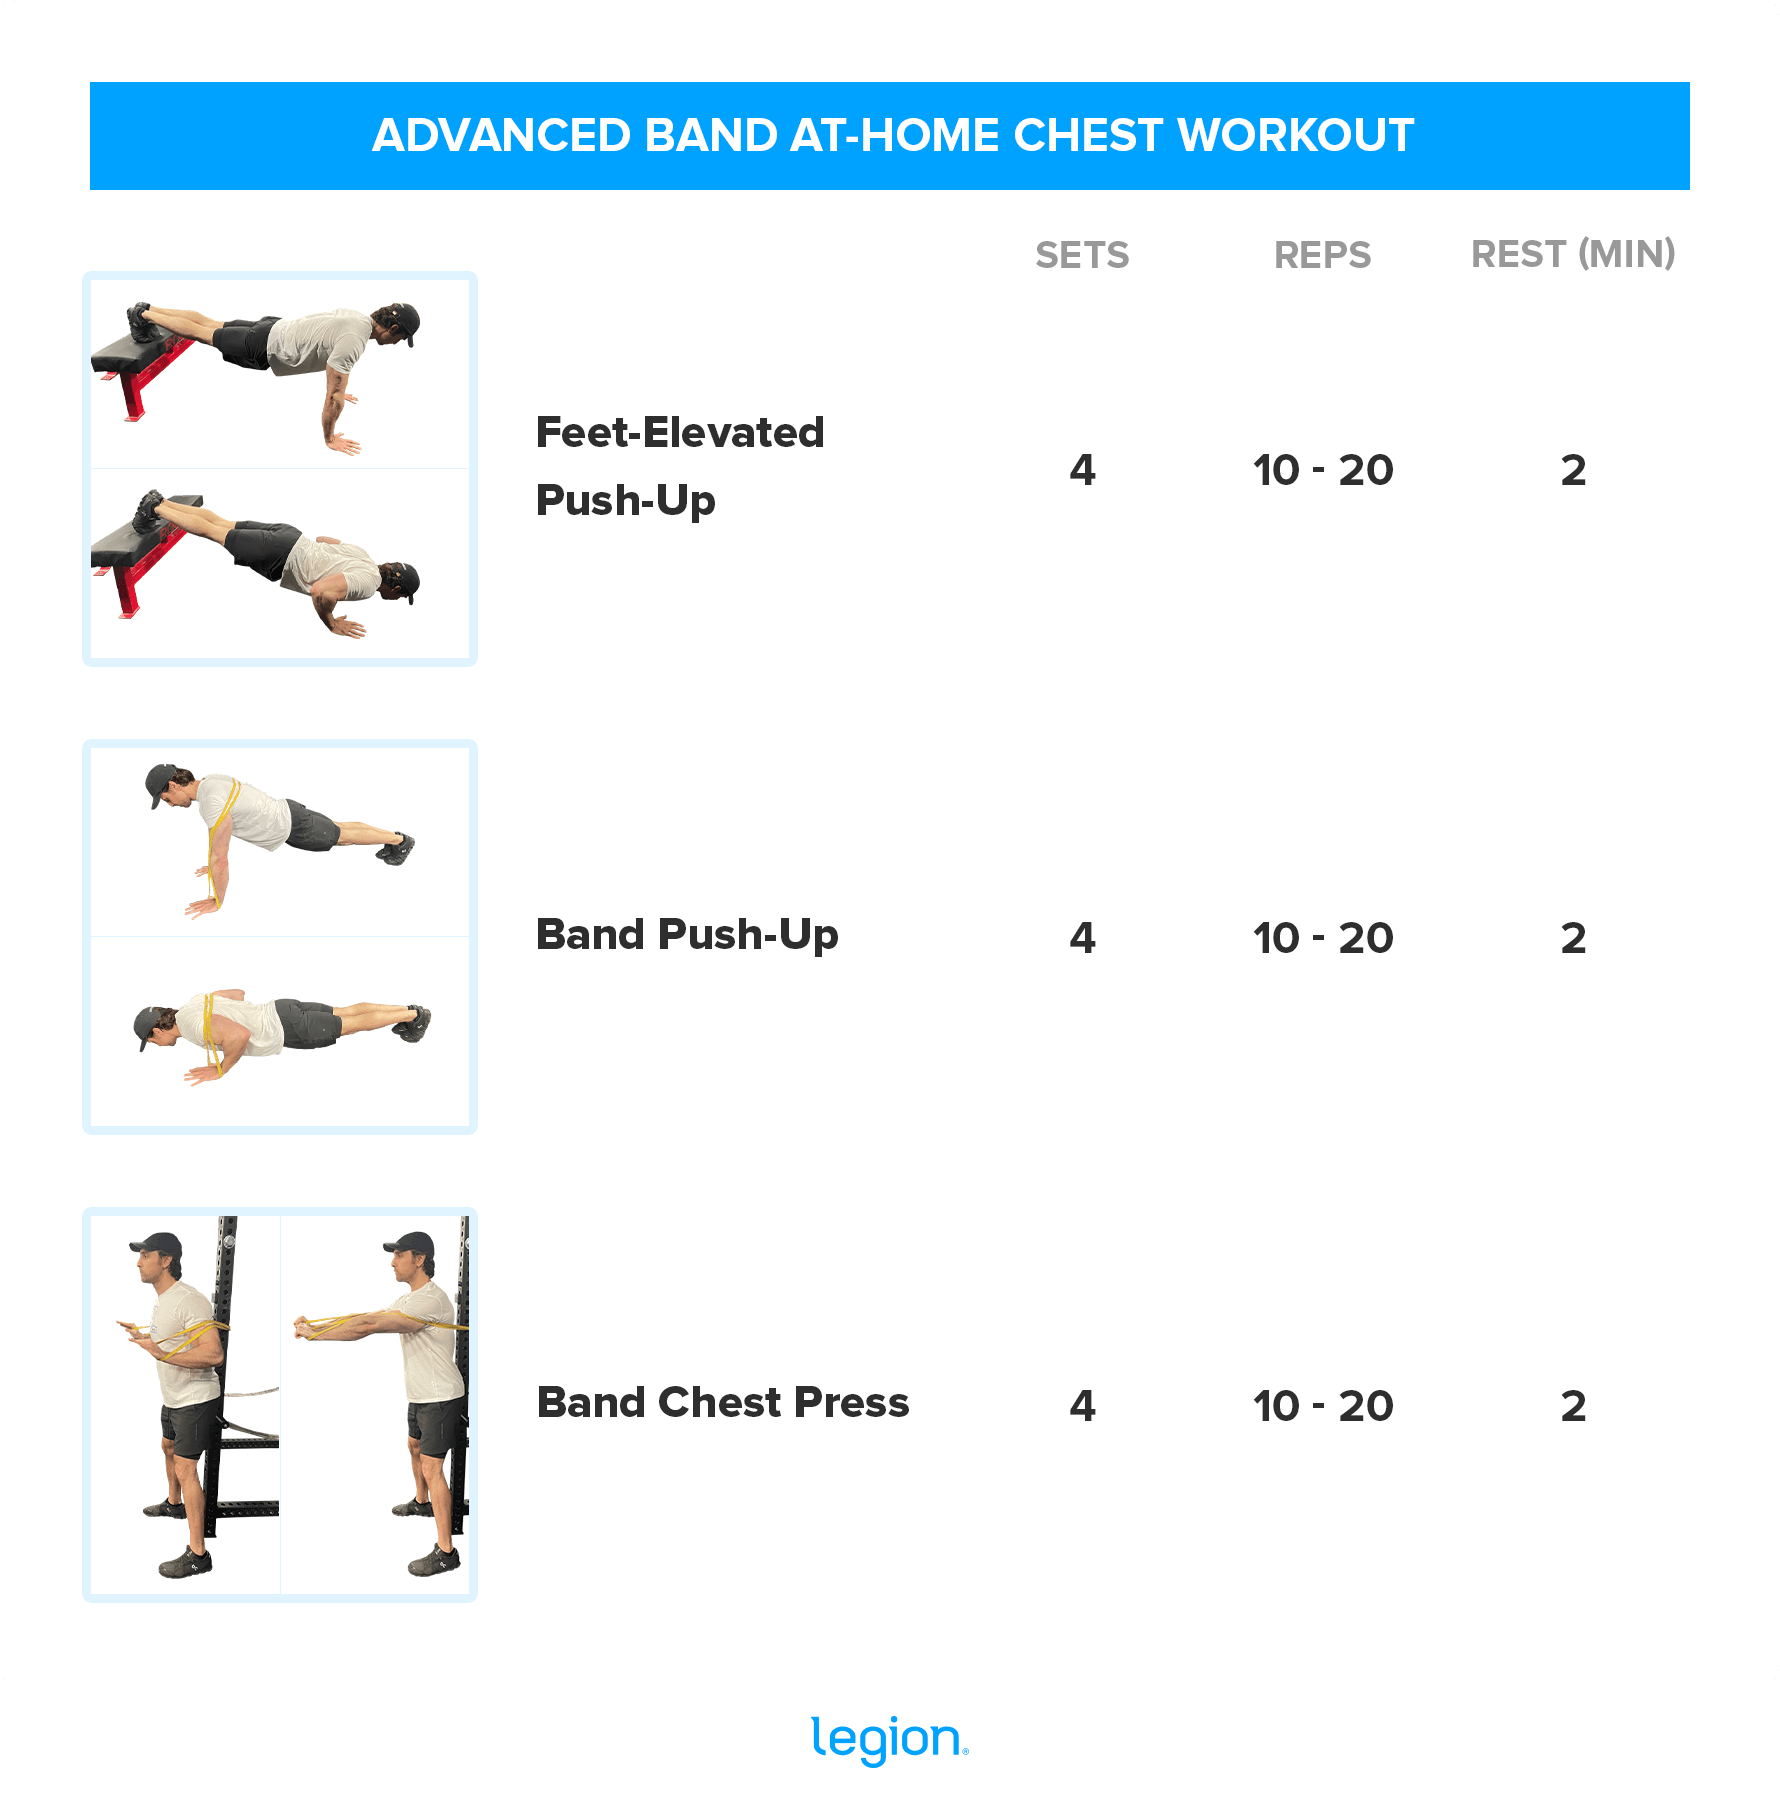 ADVANCED BAND AT-HOME CHEST WORKOUT